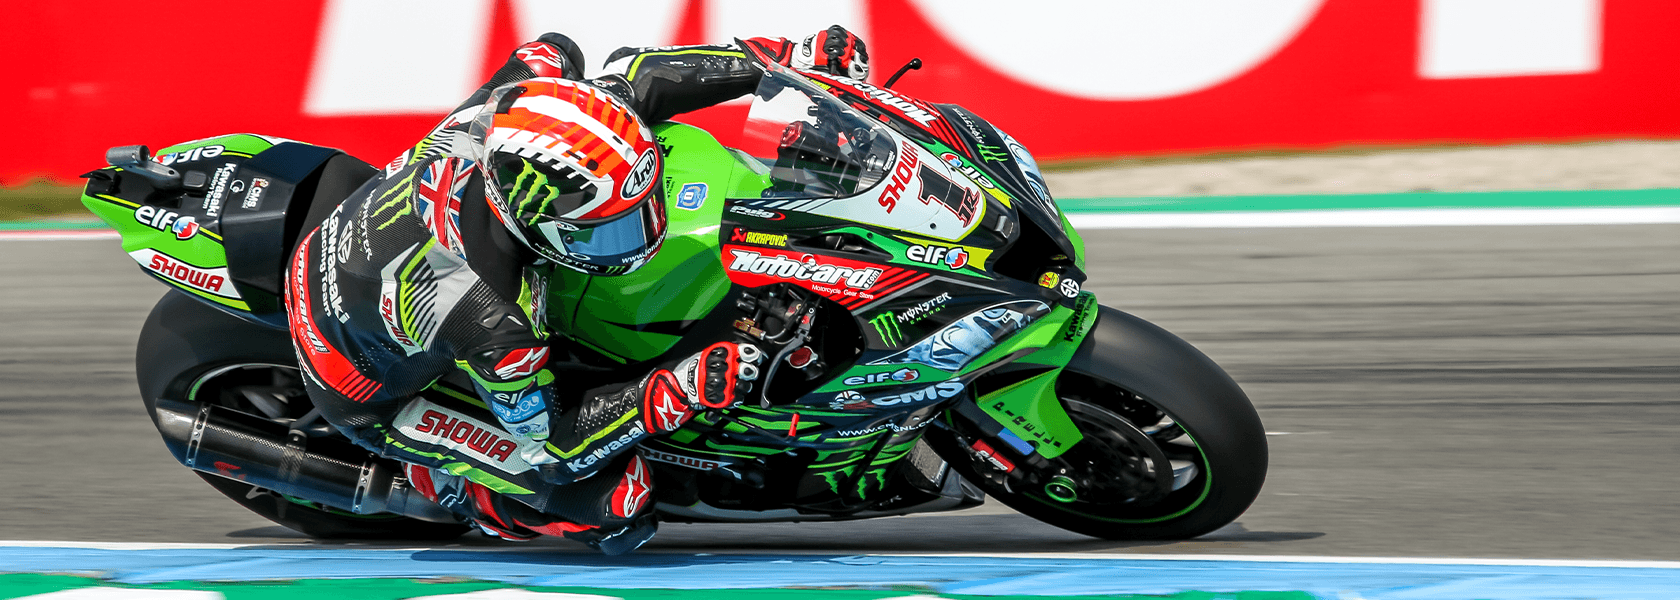 Jonathan Rea attacking a corner on board the works Kawazaki